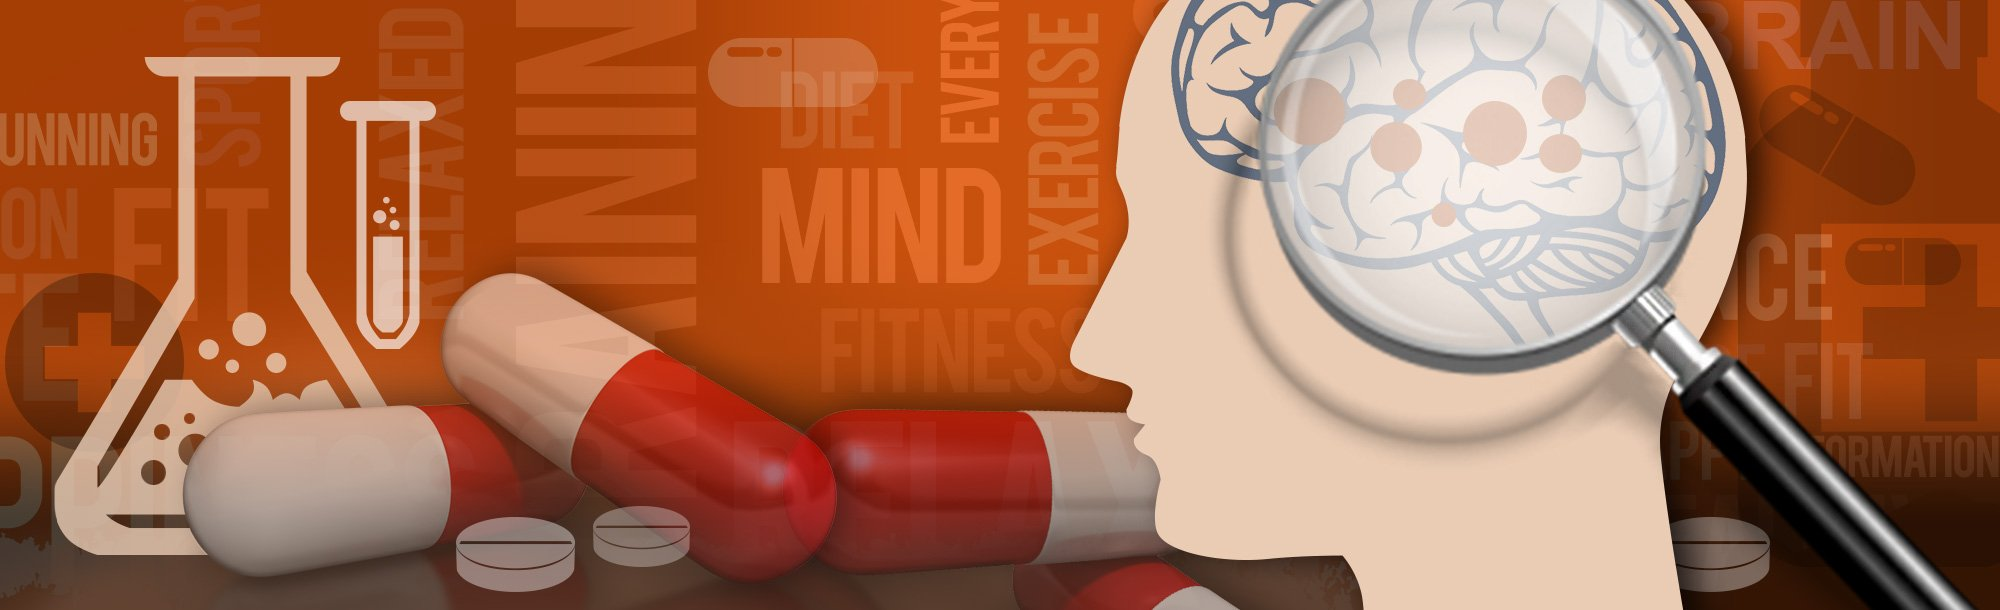 Brain Reference | Supplement Ingredients & Reviews | Online Resource